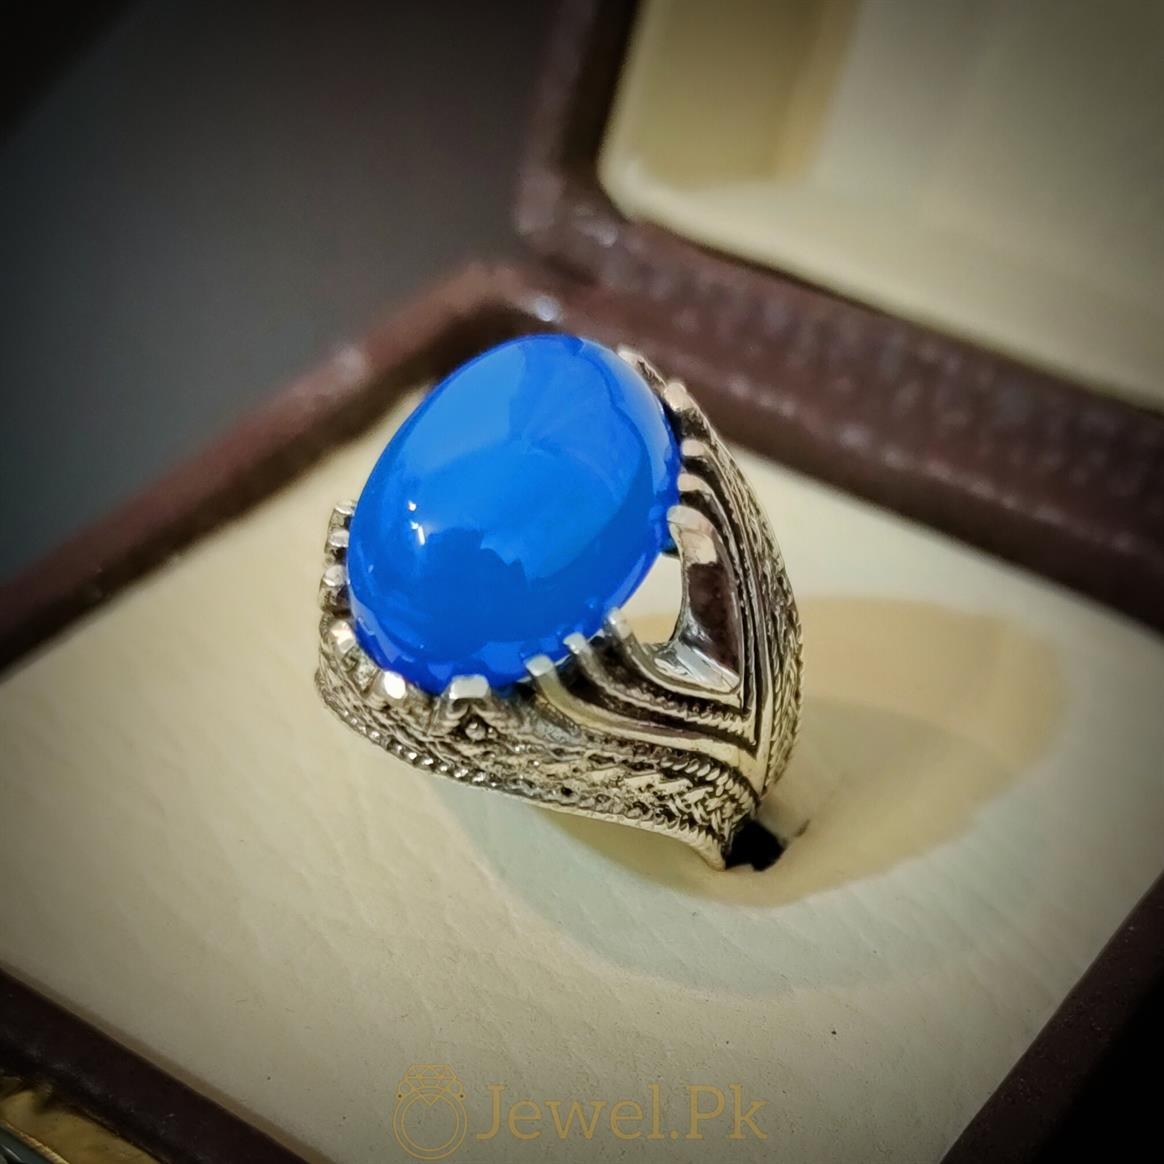 Rare Blue Aqeeq Ring Beautiful and Luxury Turkish Ring 3 natural gemstones pakistan + 925 silver jewelry online